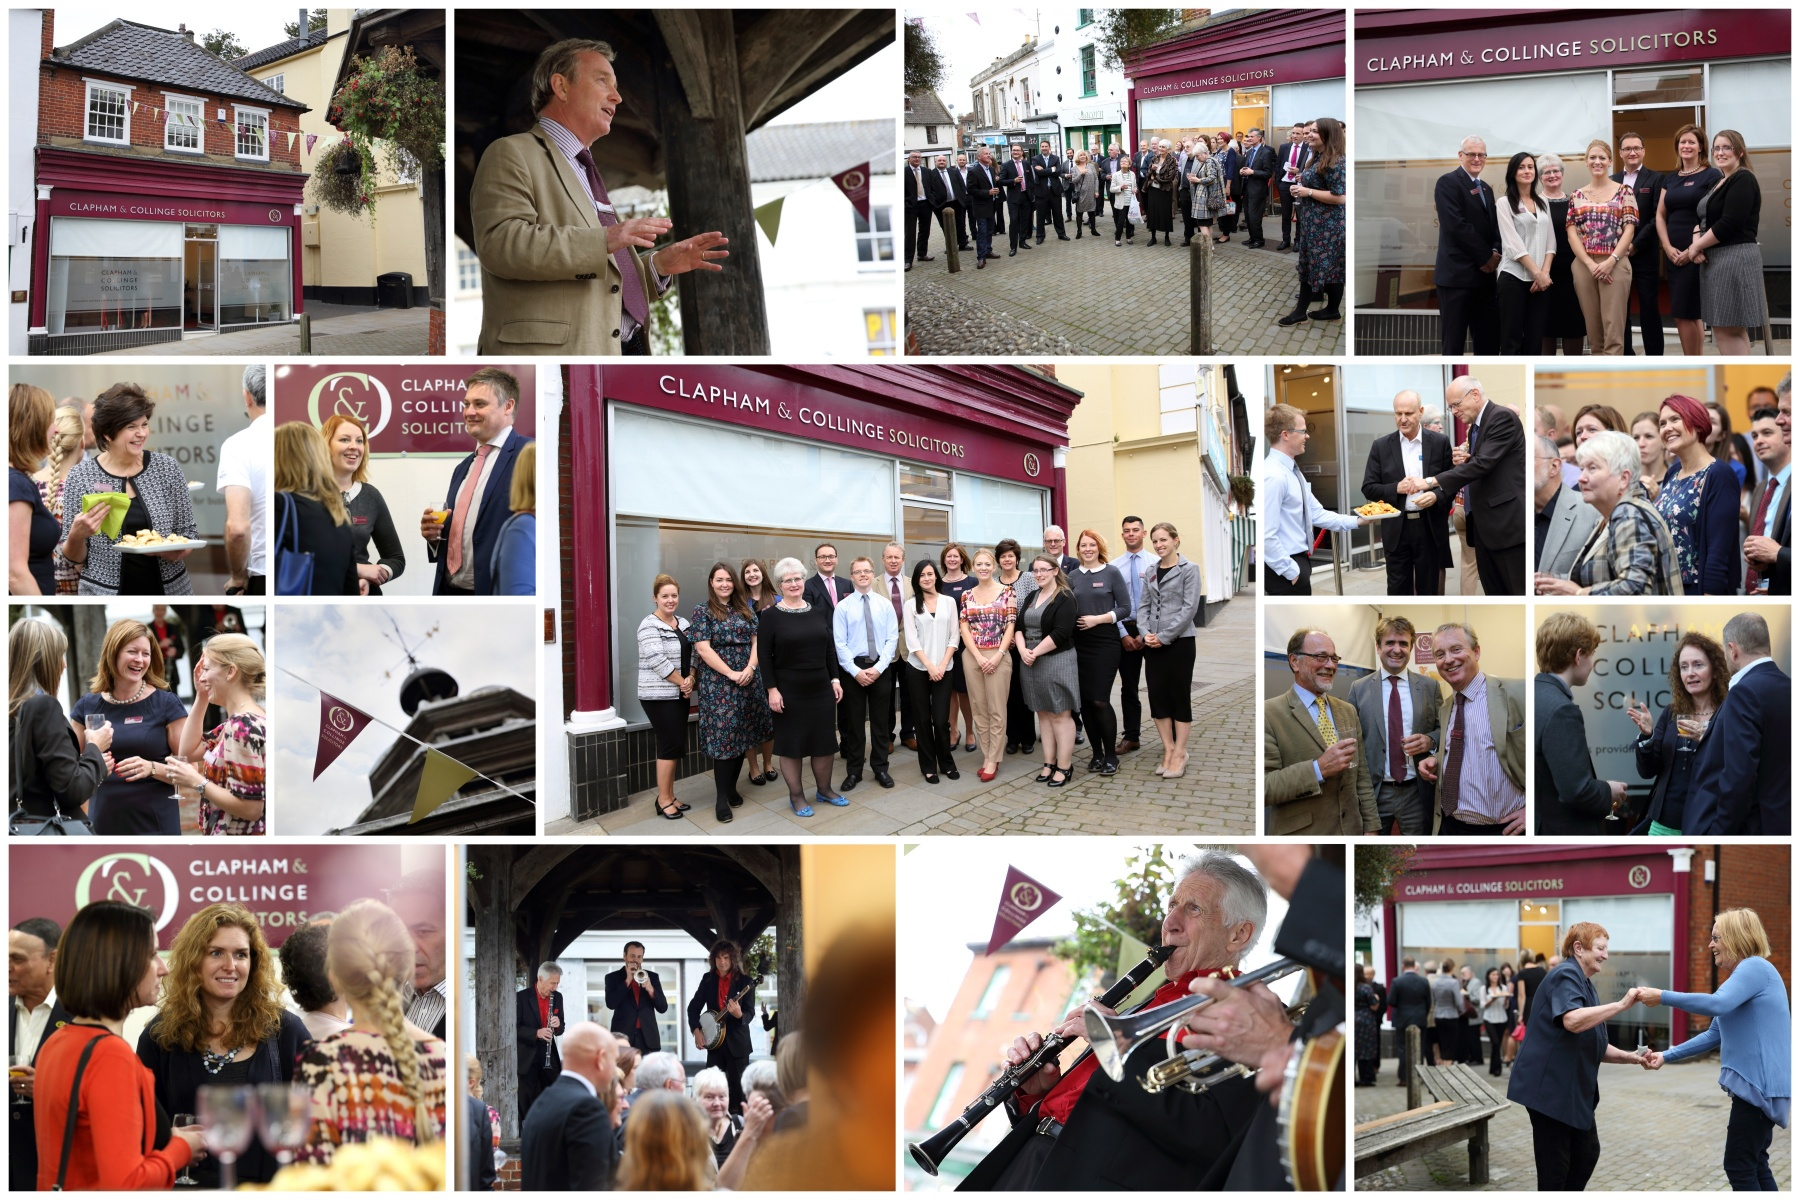 north-walsham-office-launch-montage